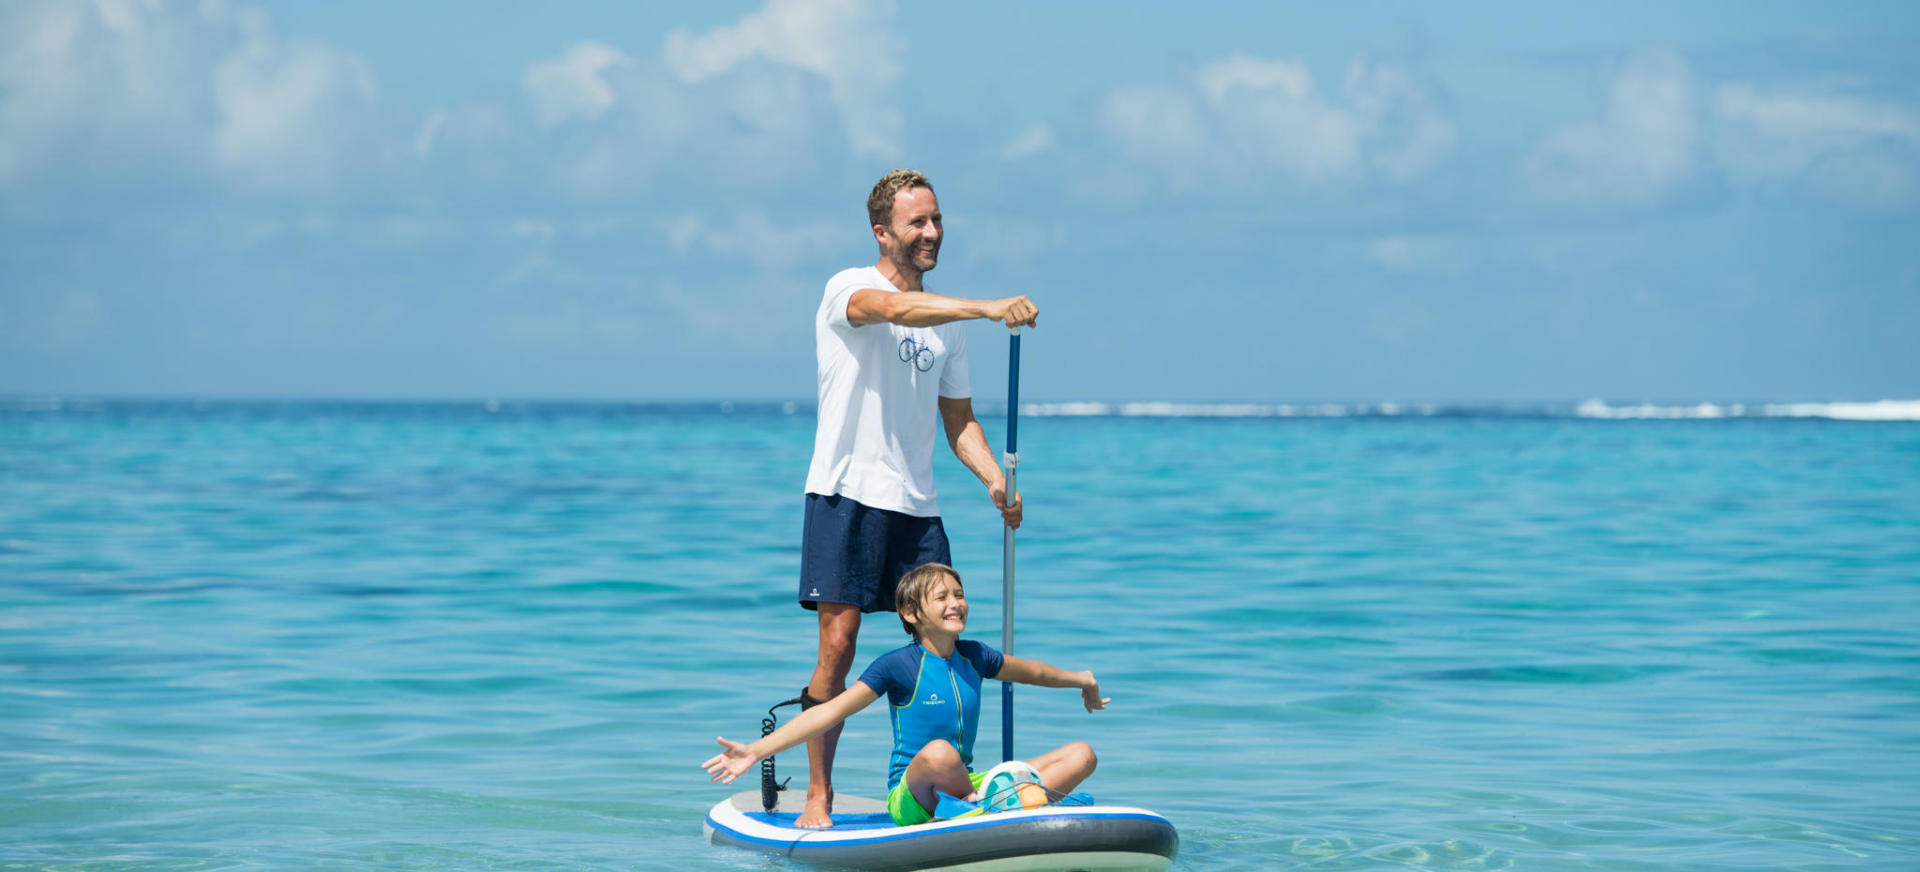 Good Surfing Habits For Stand-up Paddlers